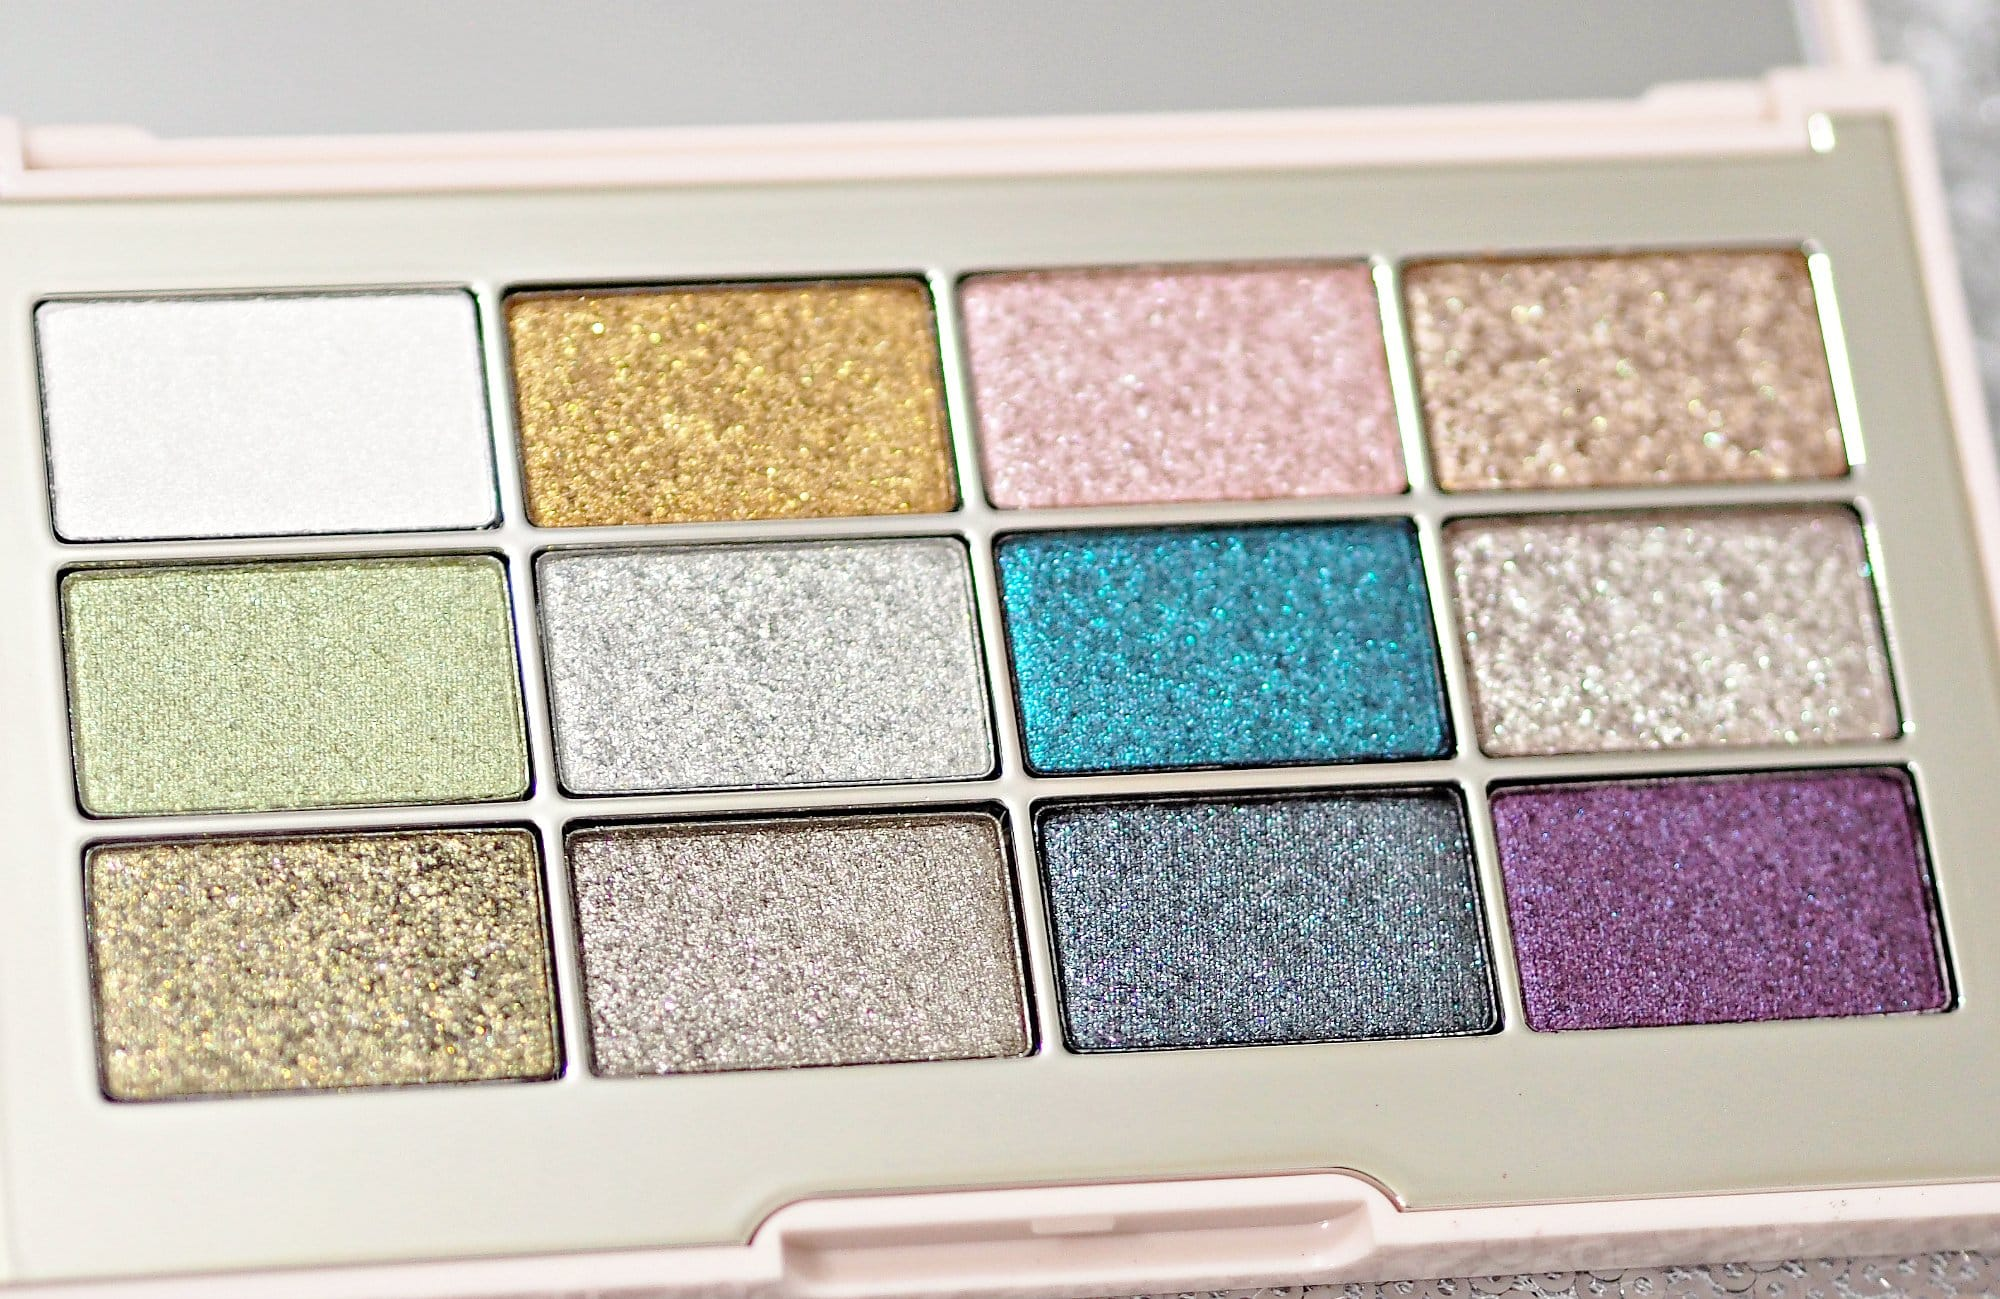 Jouer Making Magic Ultra Foil Eyeshadow Palette and Constellation Eye Topper Review and Swatches